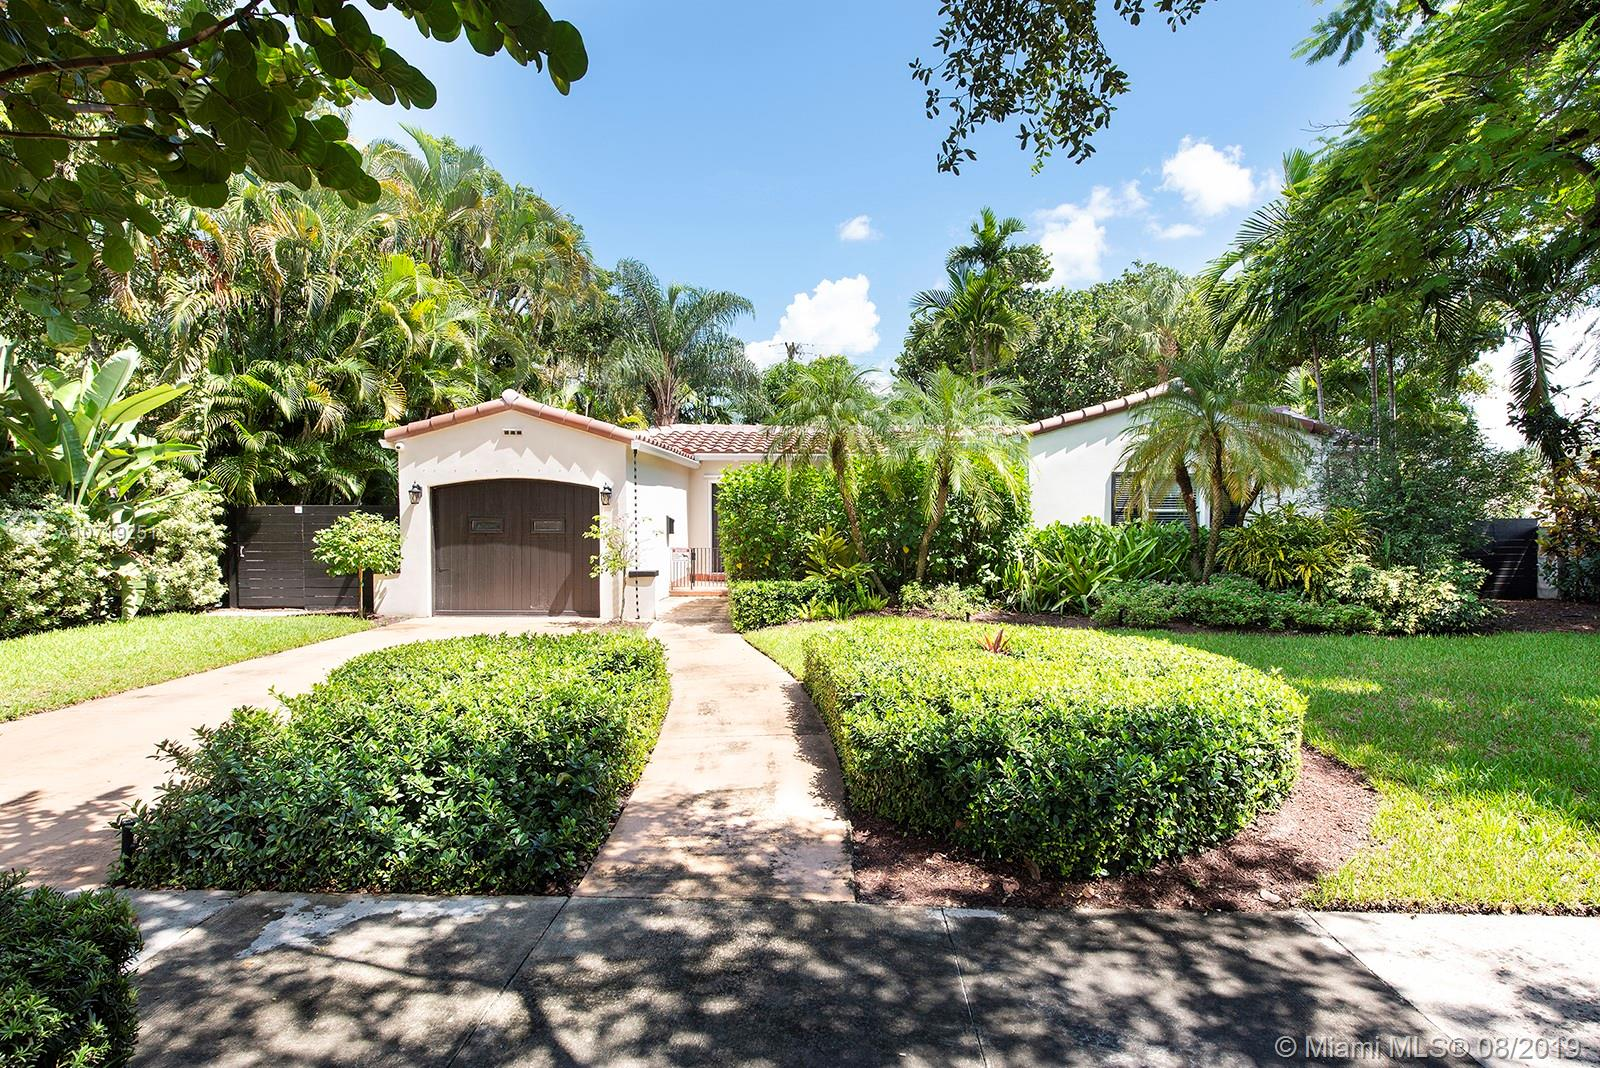 131 NE 97th St 33138 - One of Miami Shores Homes for Sale